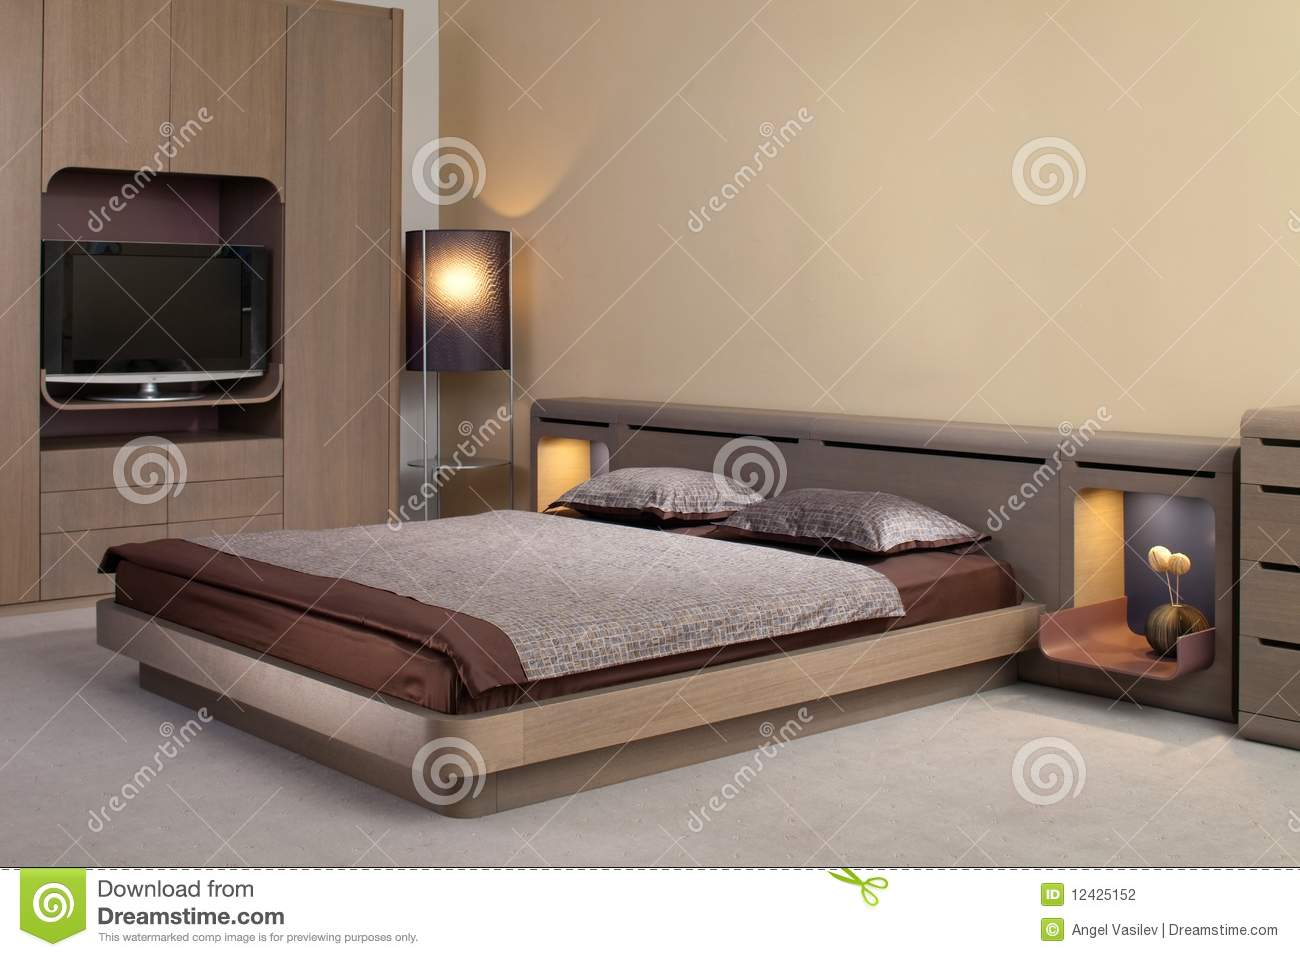 Beautiful and modern bedroom interior design stock for Beautiful bedroom interior